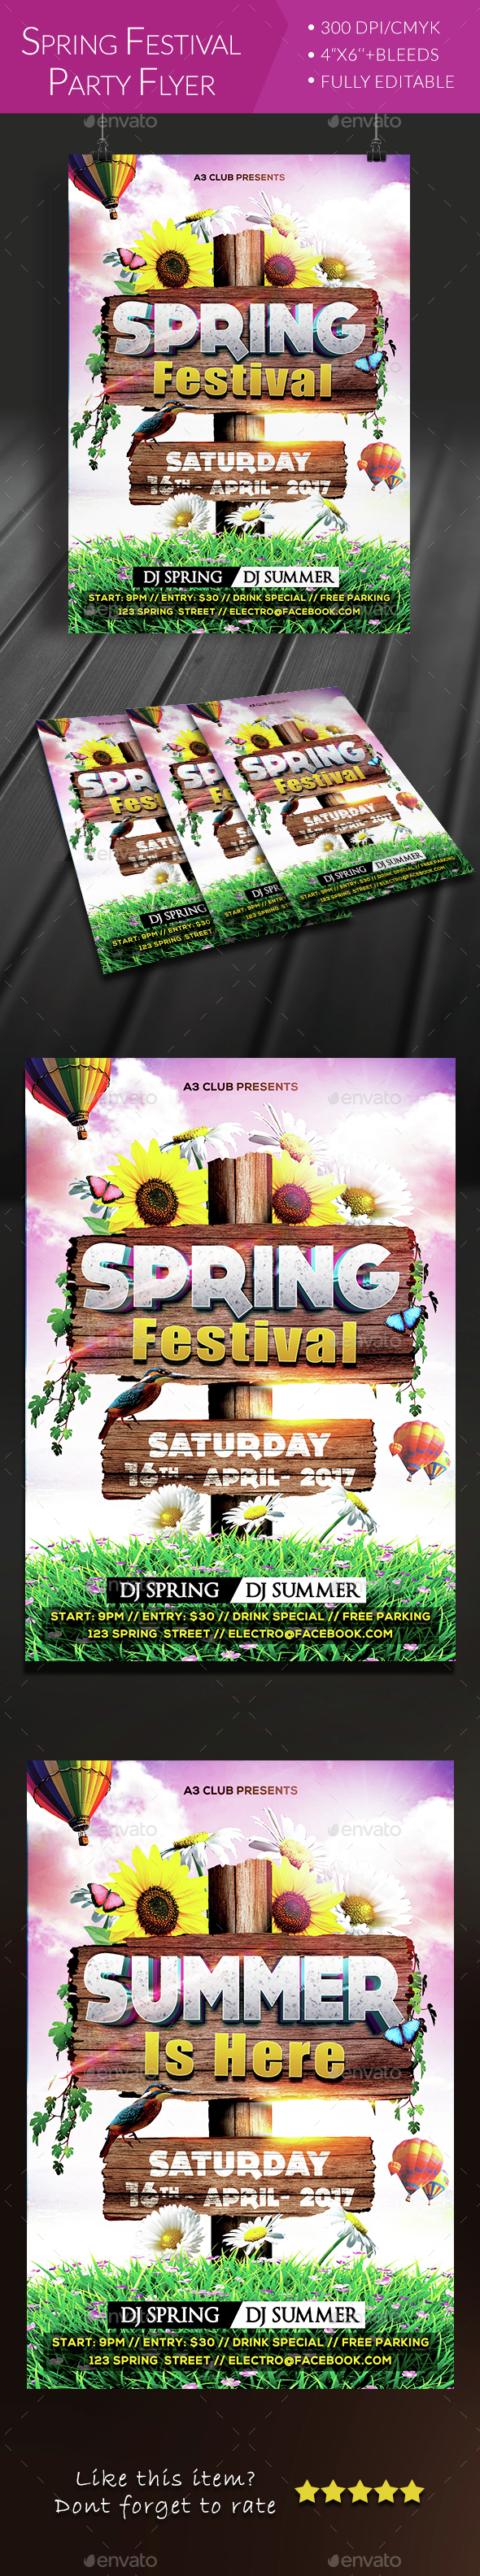 Spring Festival Party Flyer - Clubs & Parties Events